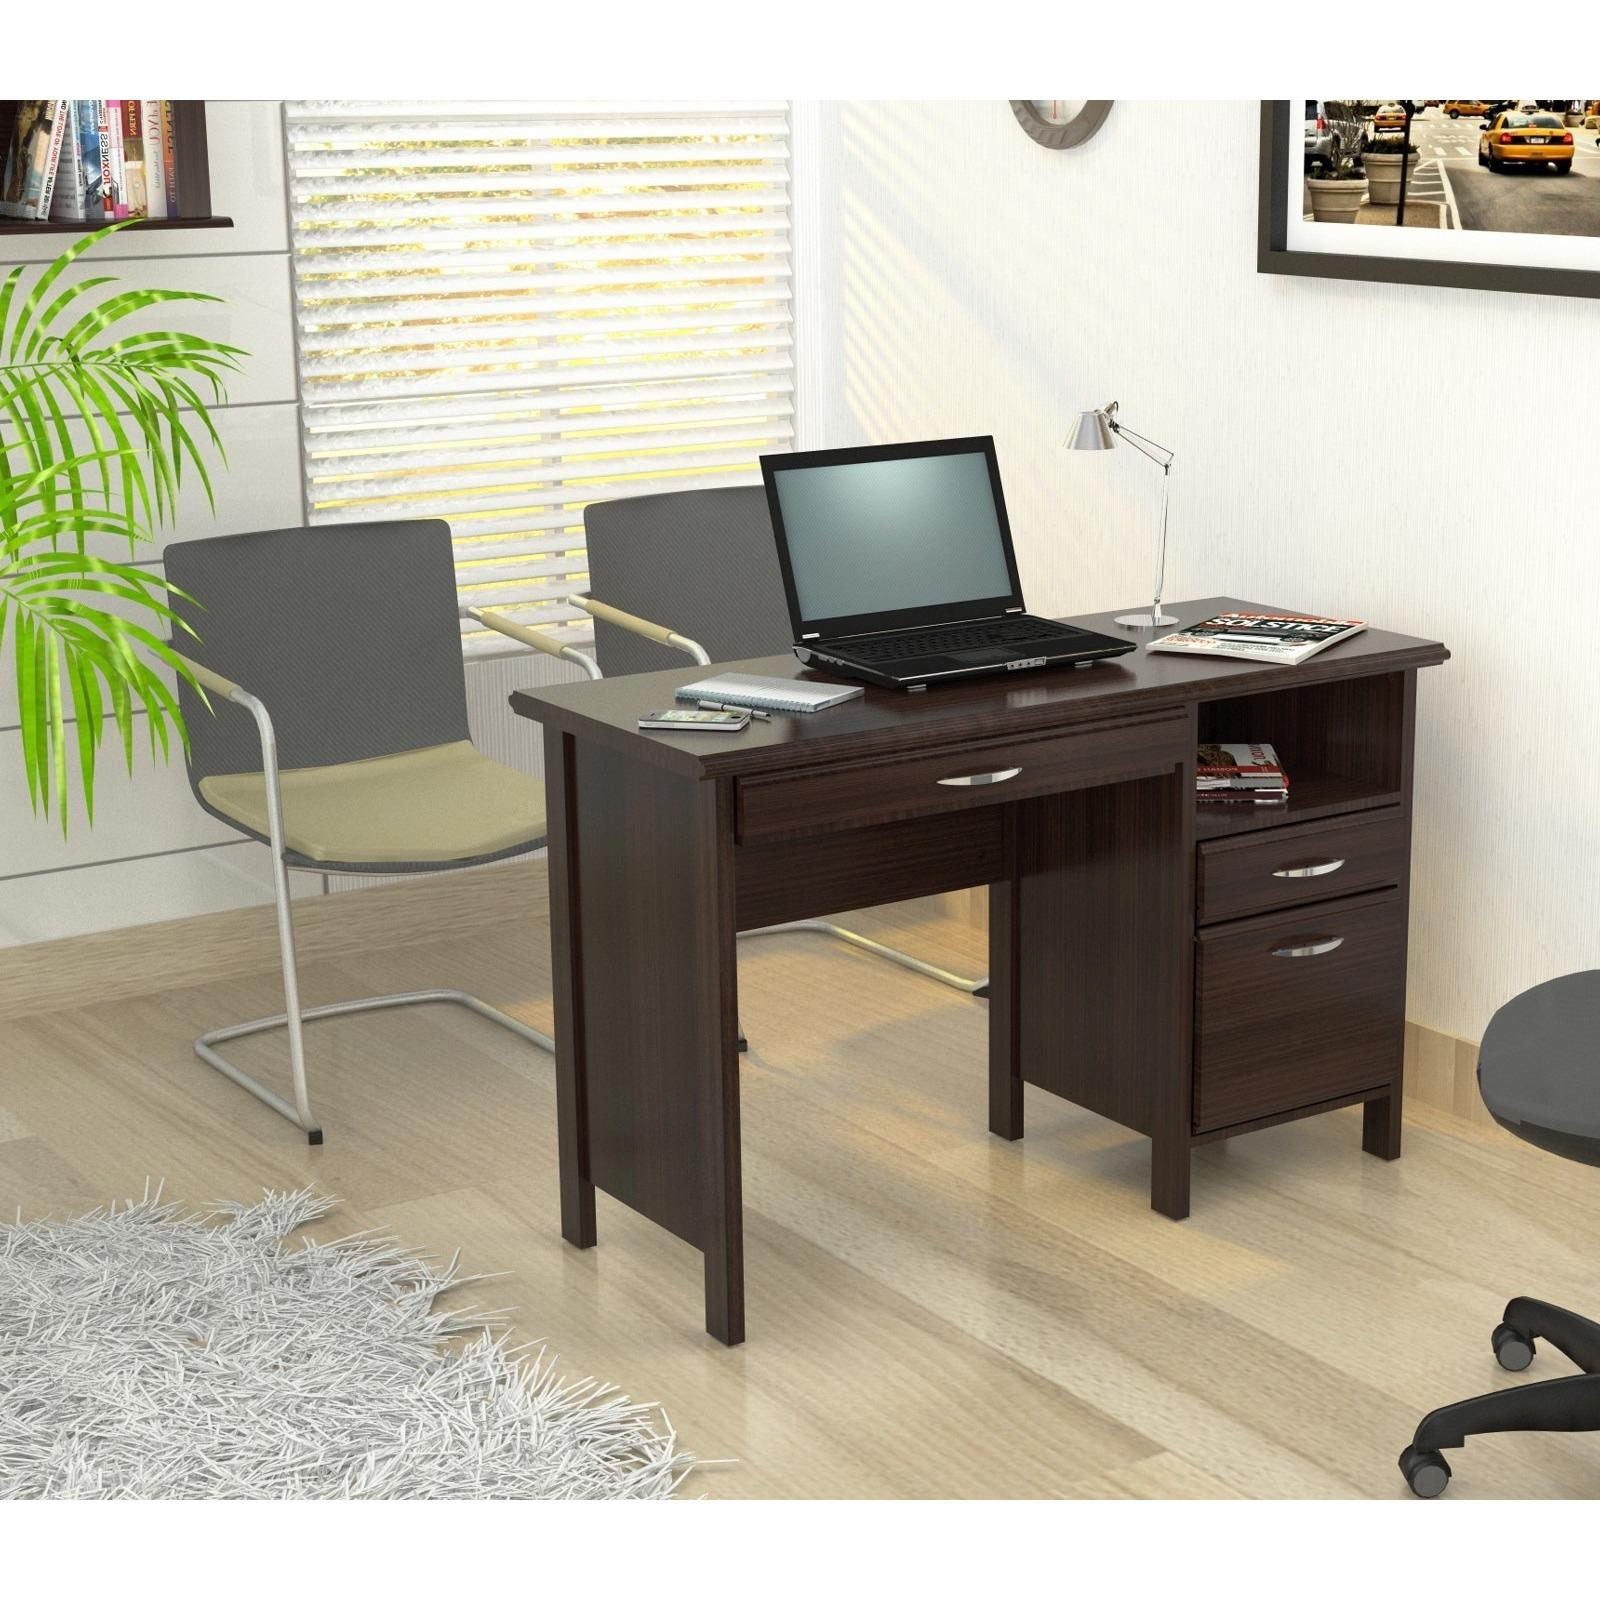 Inval Softform Espresso Computer Desk  from Overstock